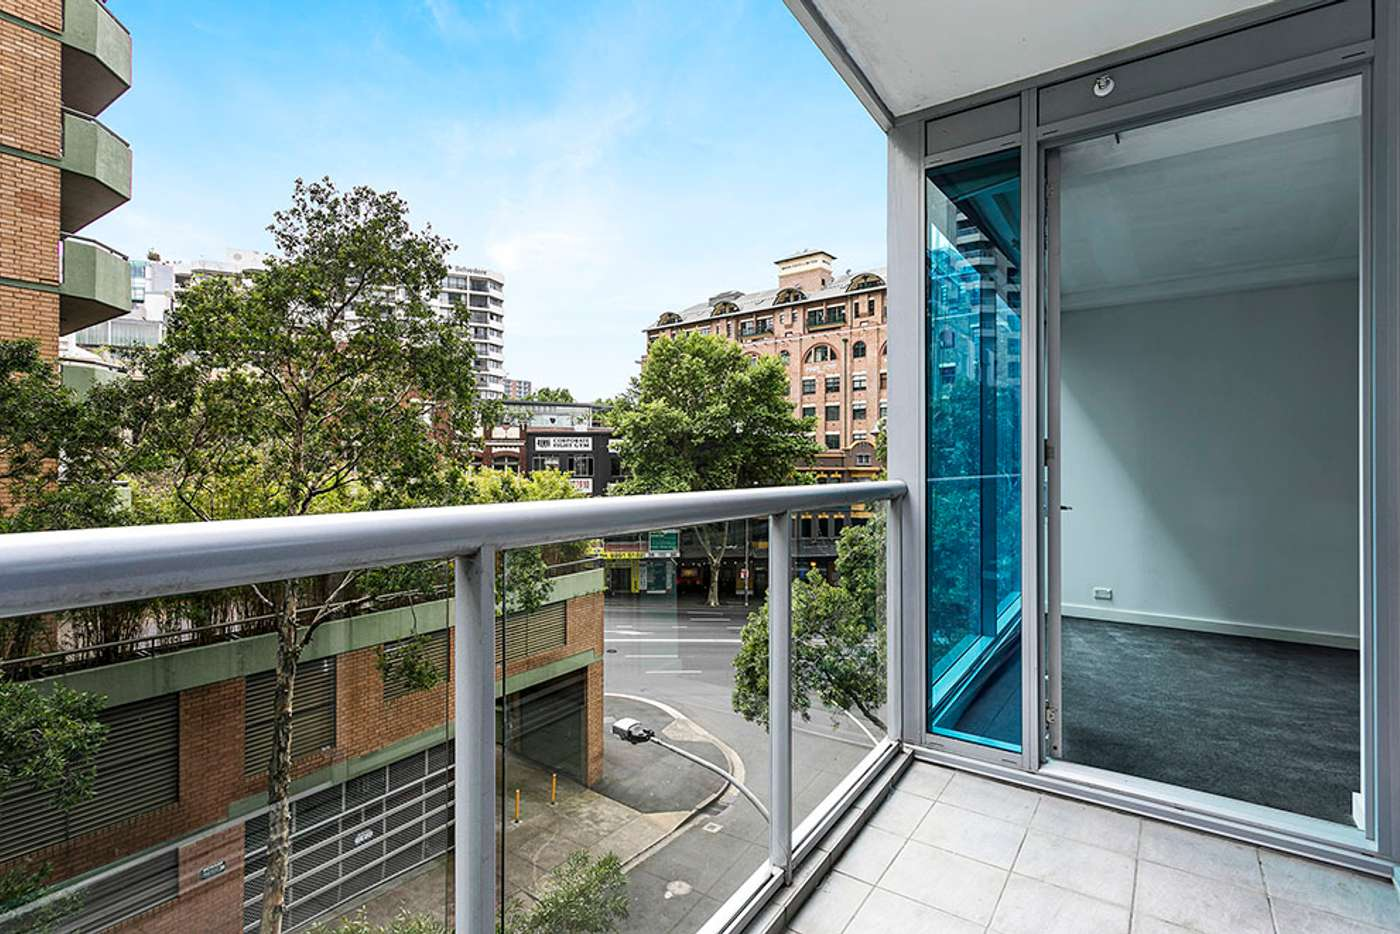 Main view of Homely apartment listing, 27-29 Commonwealth Street, Sydney NSW 2000